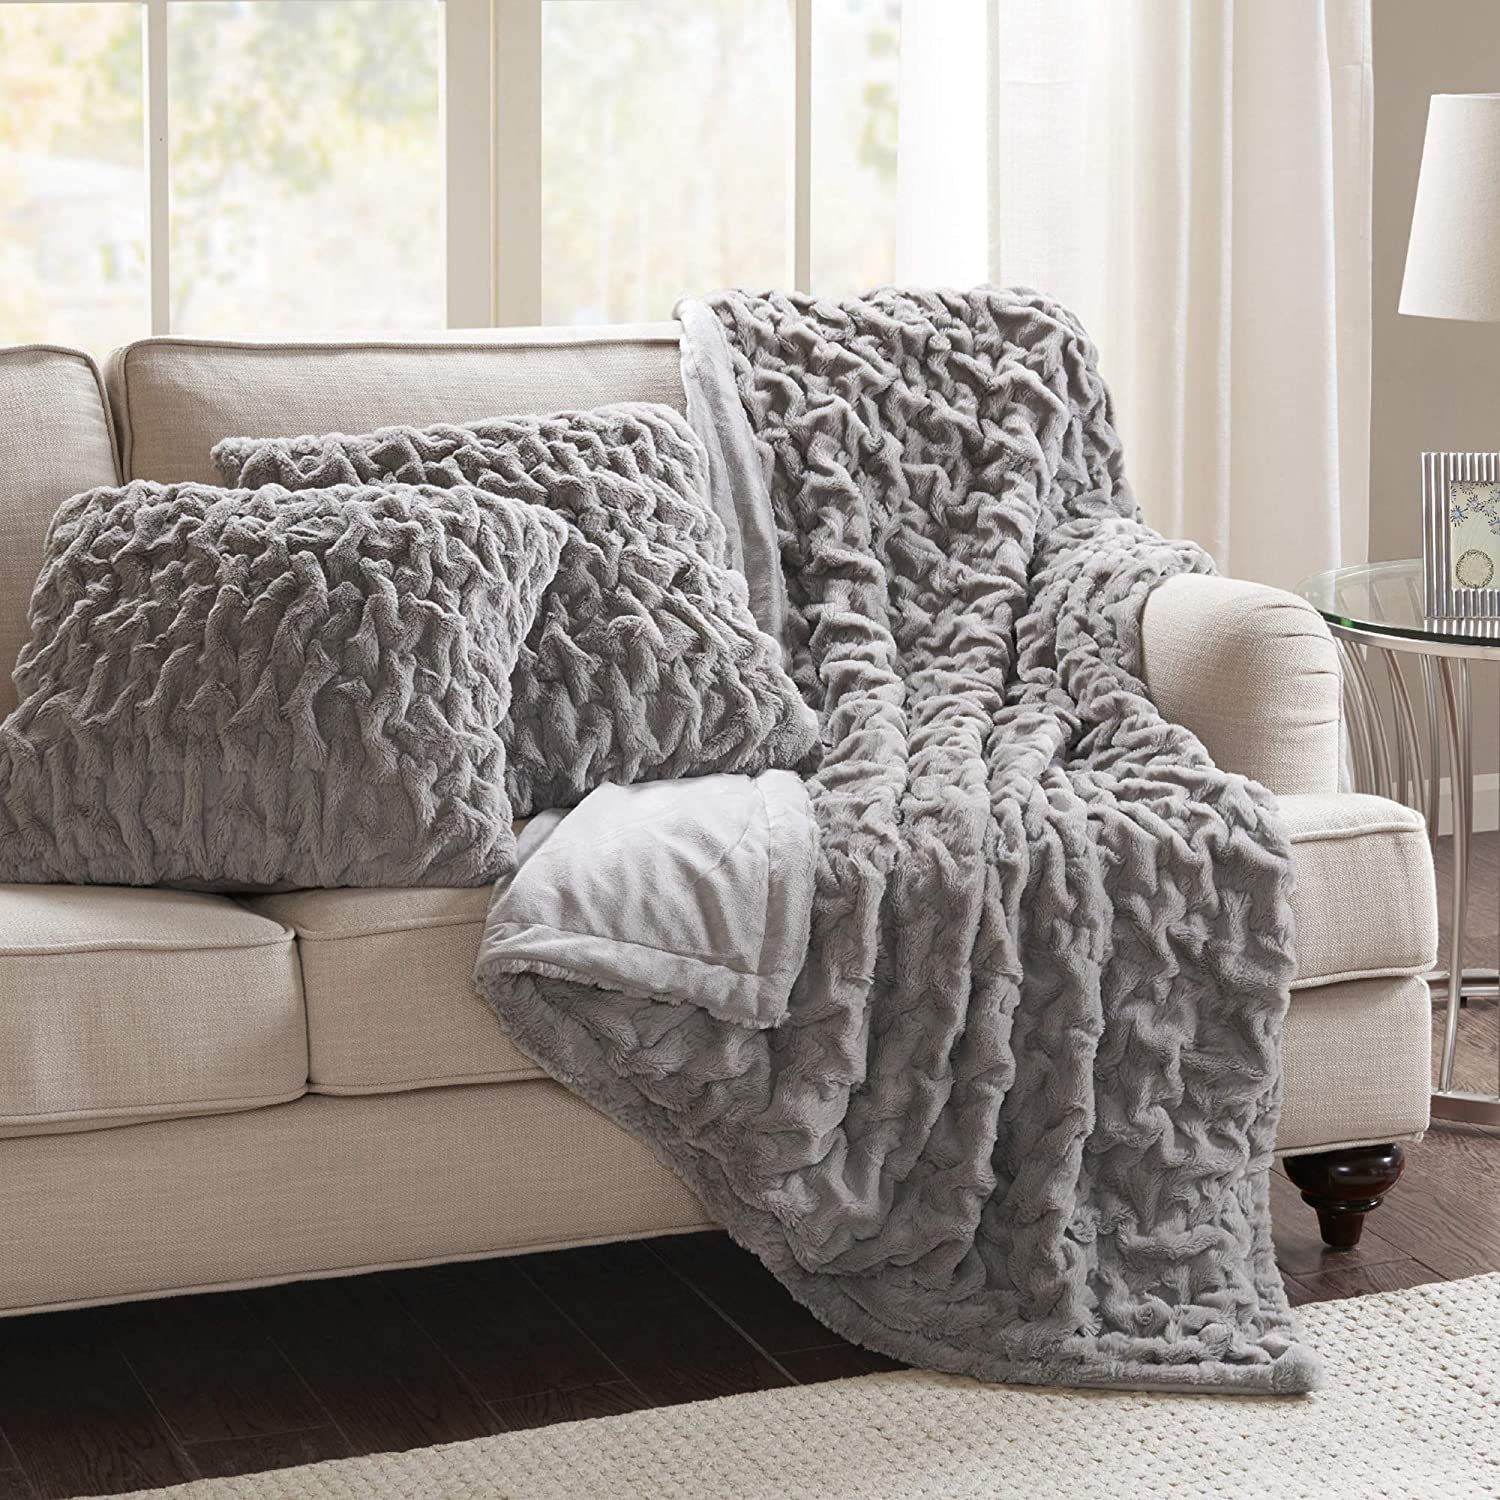 Chanasya 3-Piece Set Soft Faux Fur Throw Blanket Cozy Sherpa with Pillow Covers